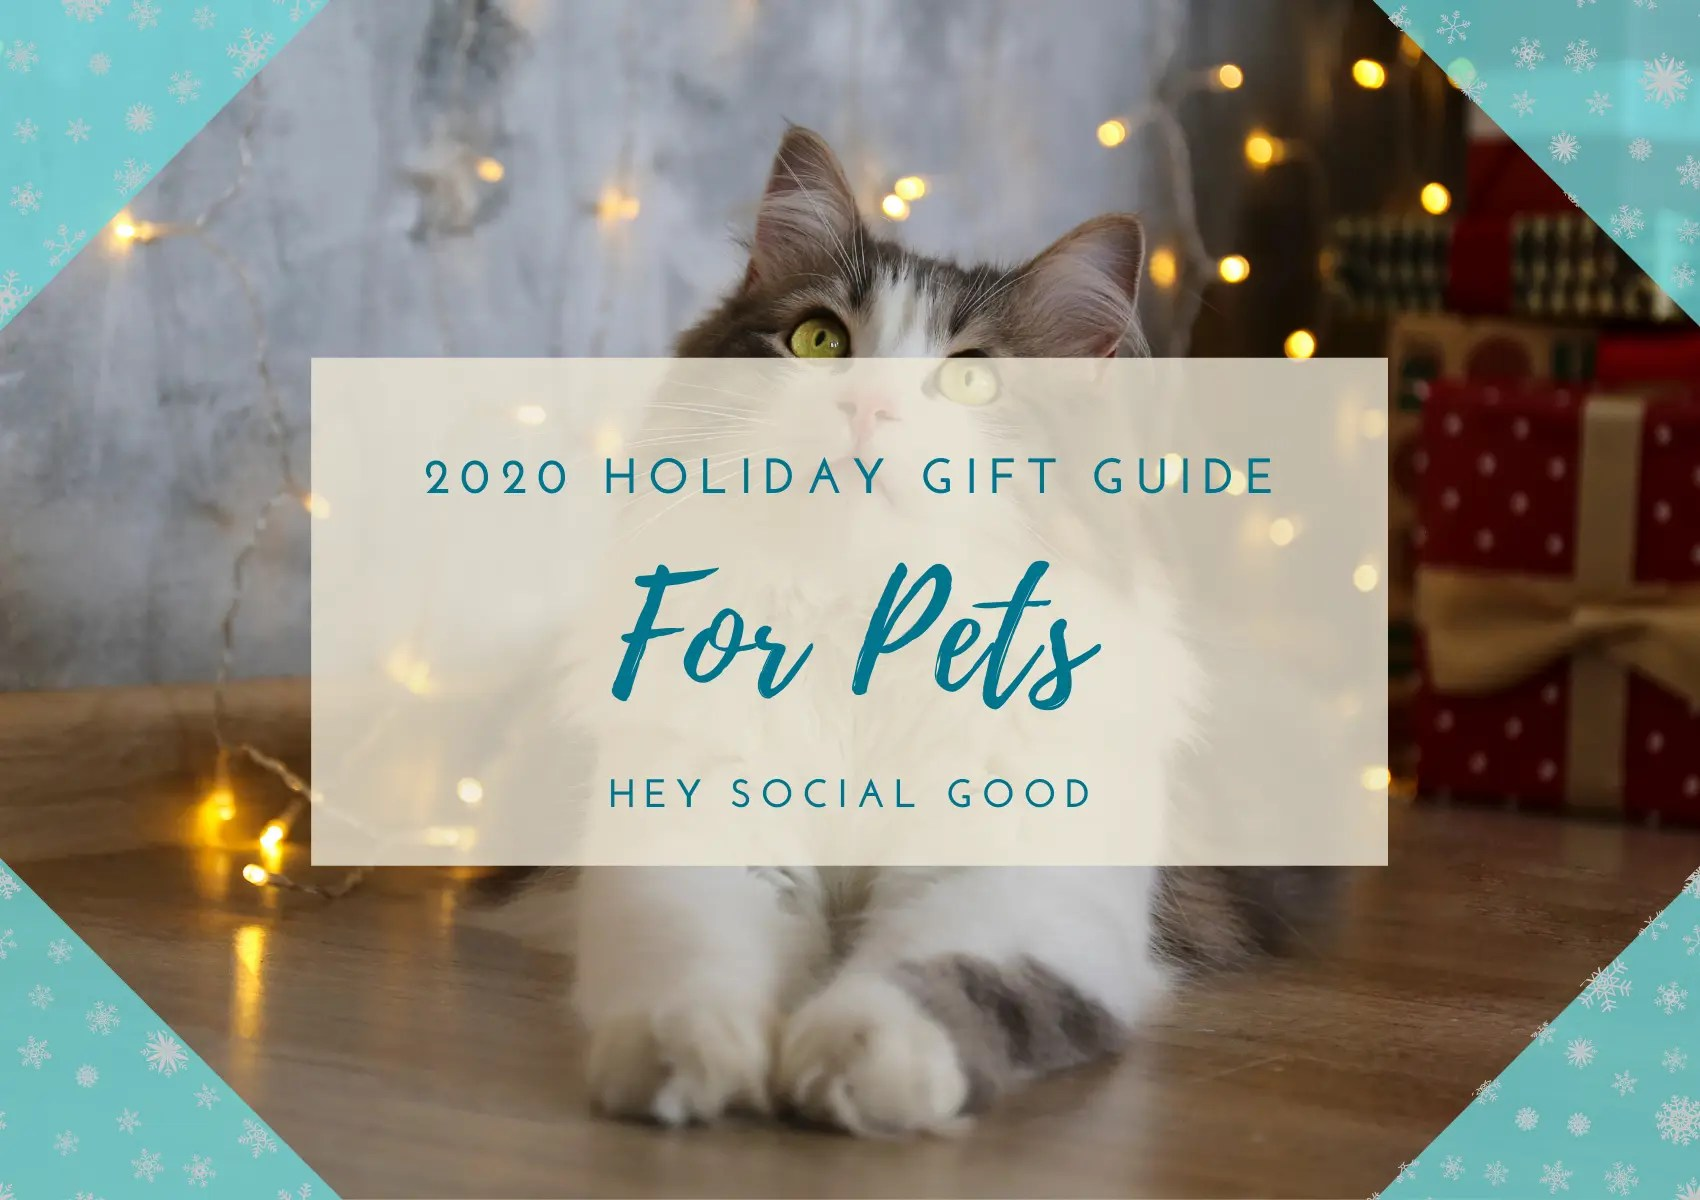 Sustainable and Ethical Holiday Gift's for Pets